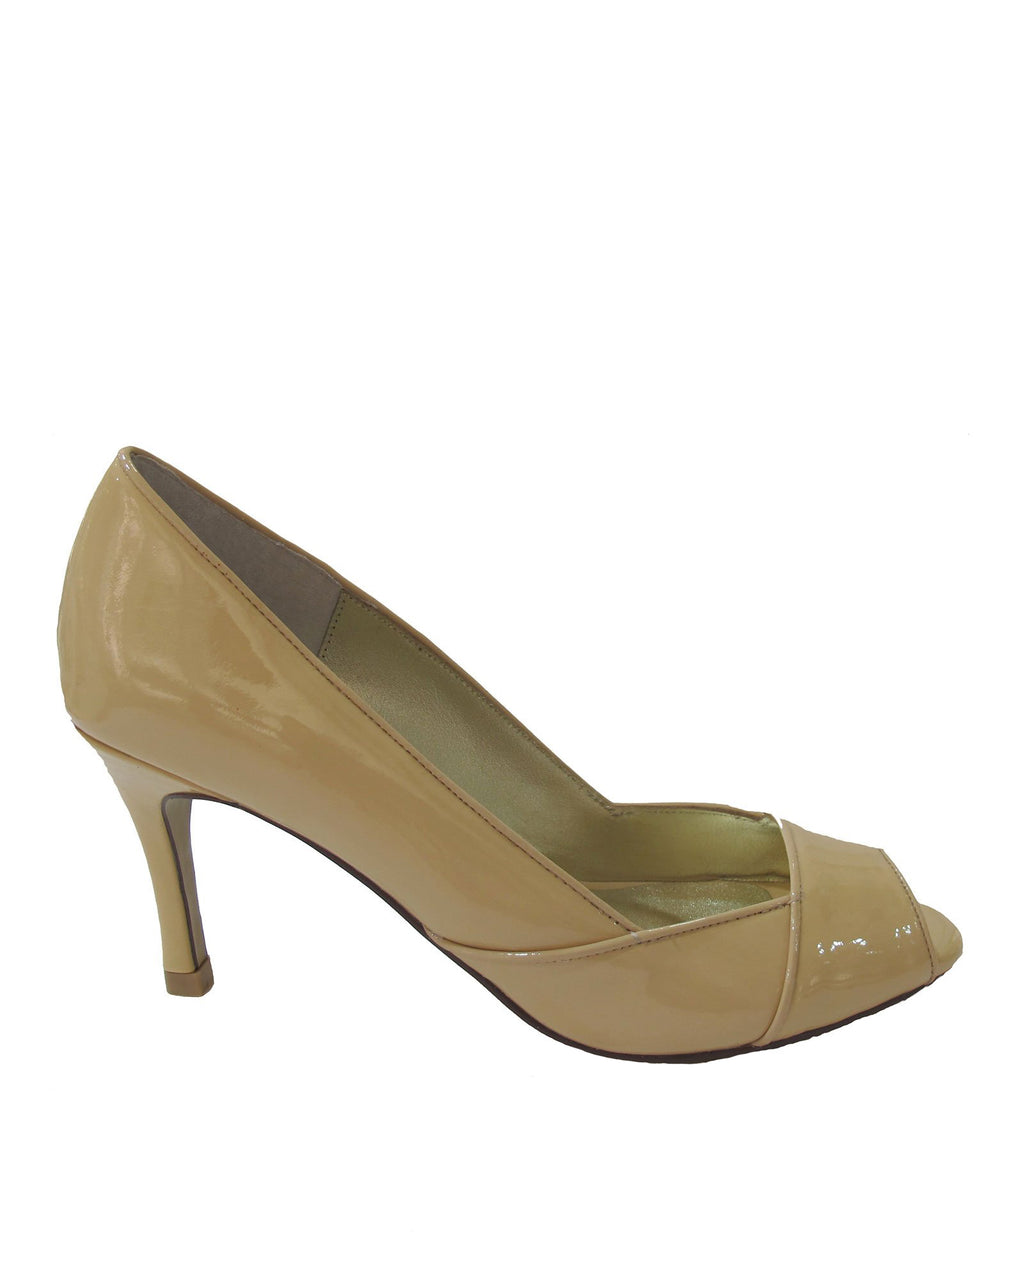 Izoa Sparkle Heels Nude (SIZES 35 & 37 ONLY)